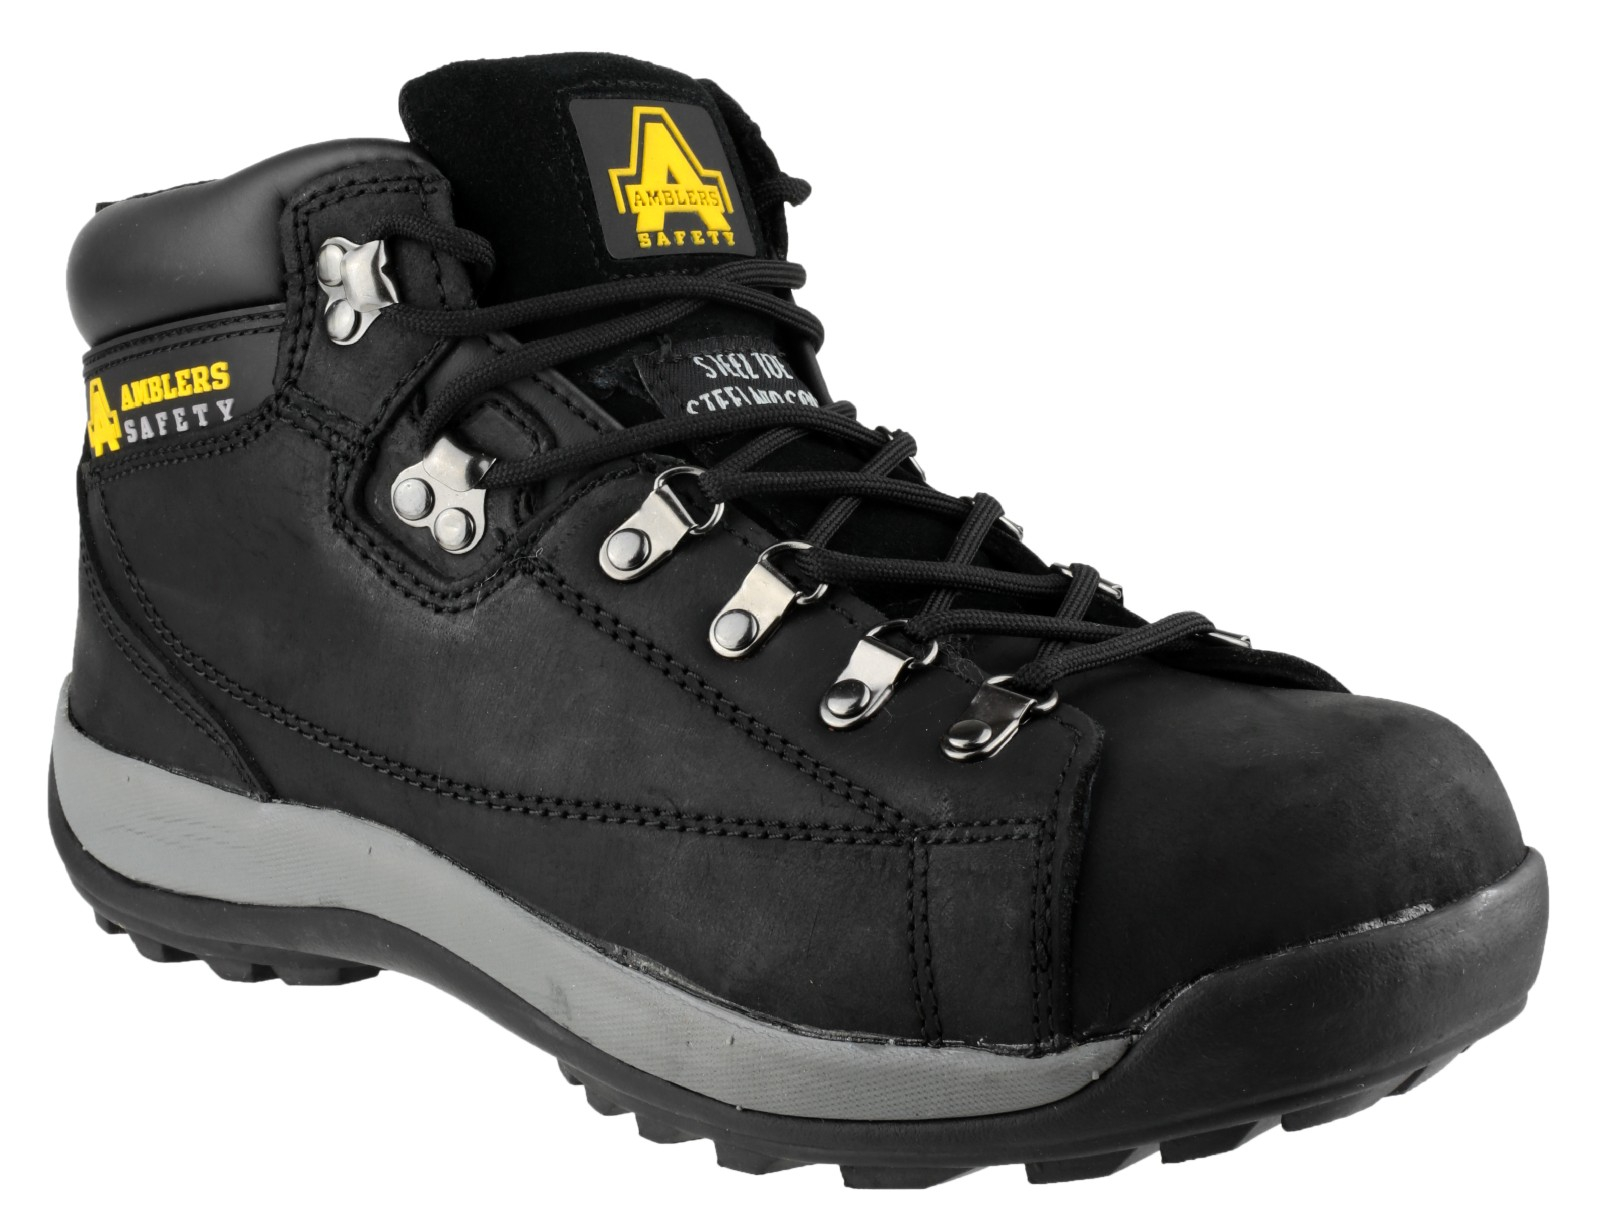 FS123 Safety Boots